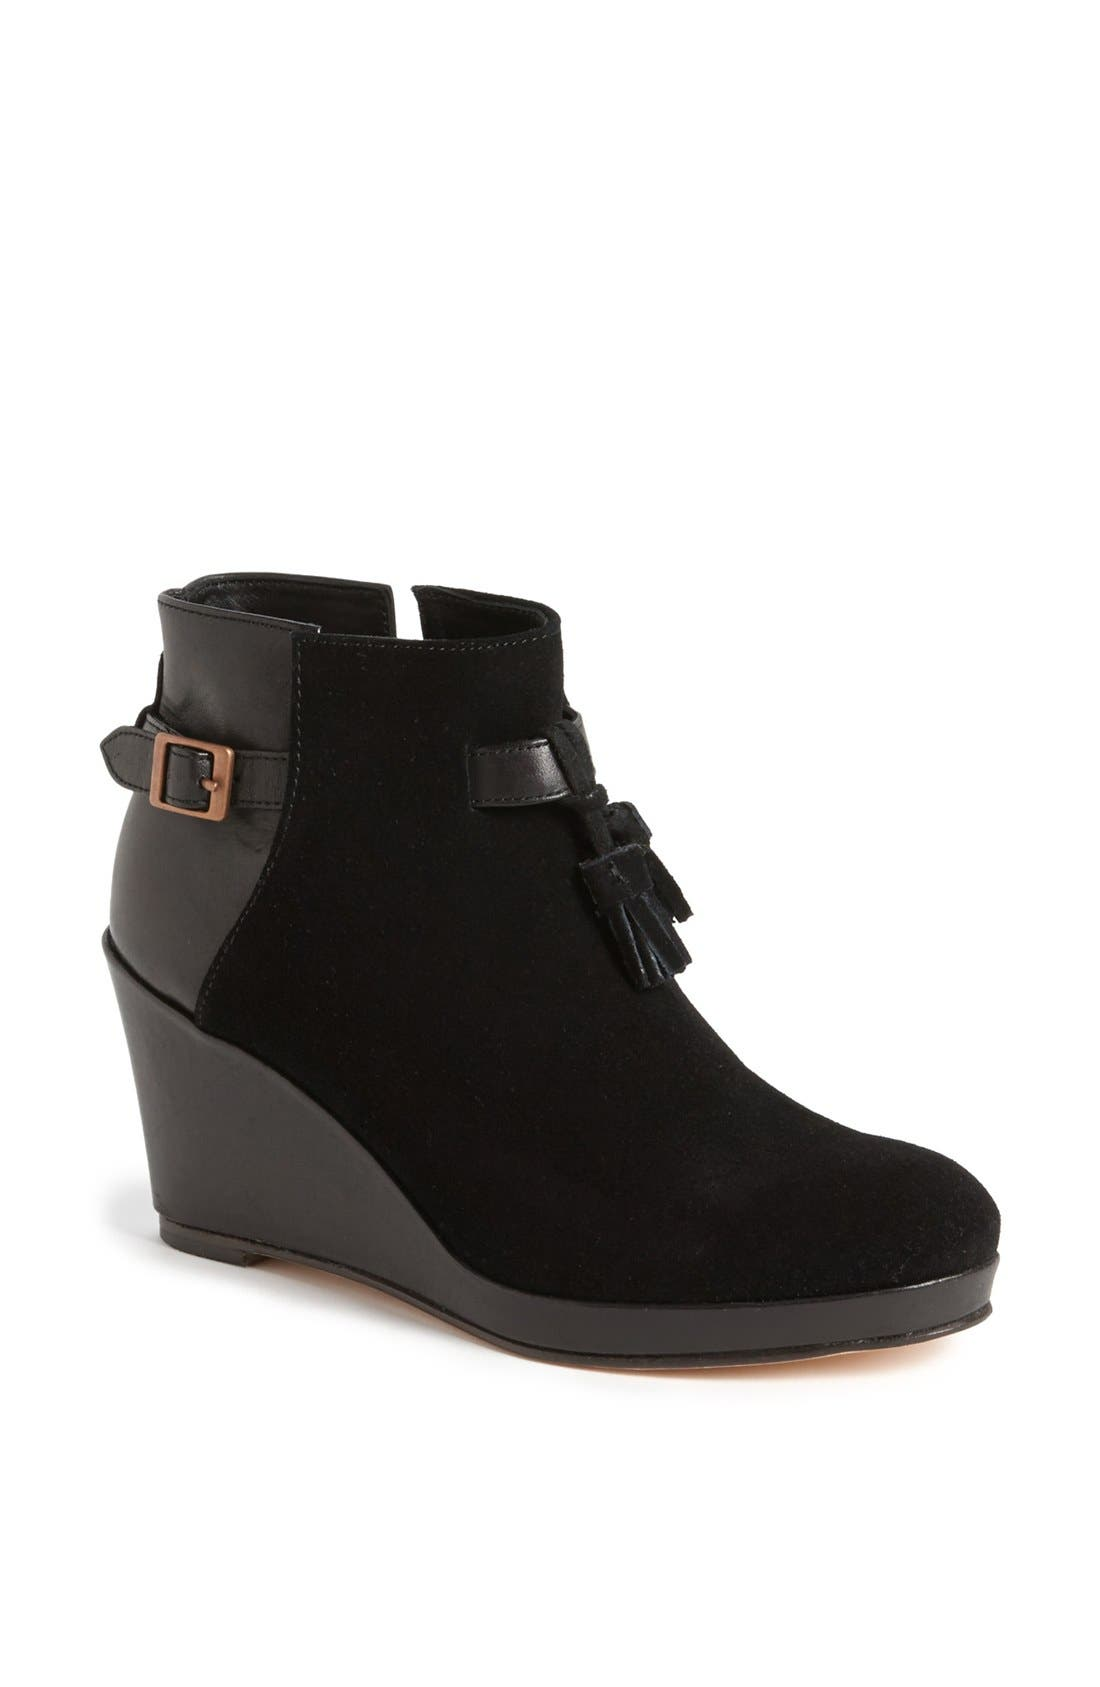 Alternate Image 1 Selected - Wolverine 1000 Mile by Samantha Pleet 'Socialite' Suede & Leather Wedge Bootie